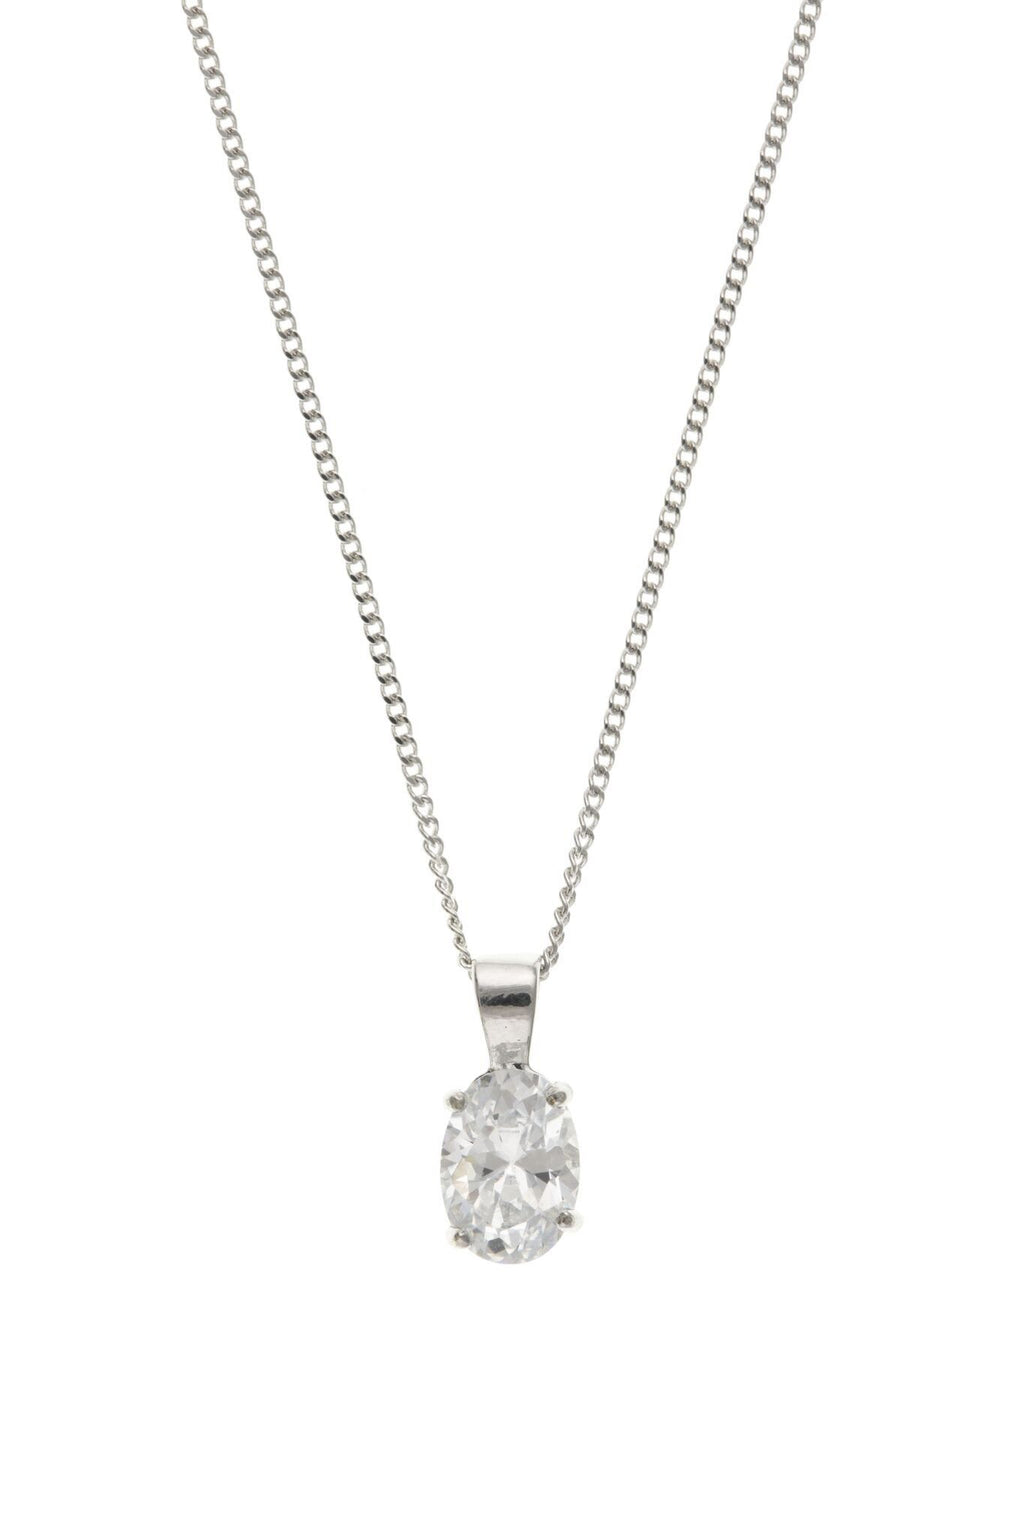 9ct White Gold Oval CZ Pendant